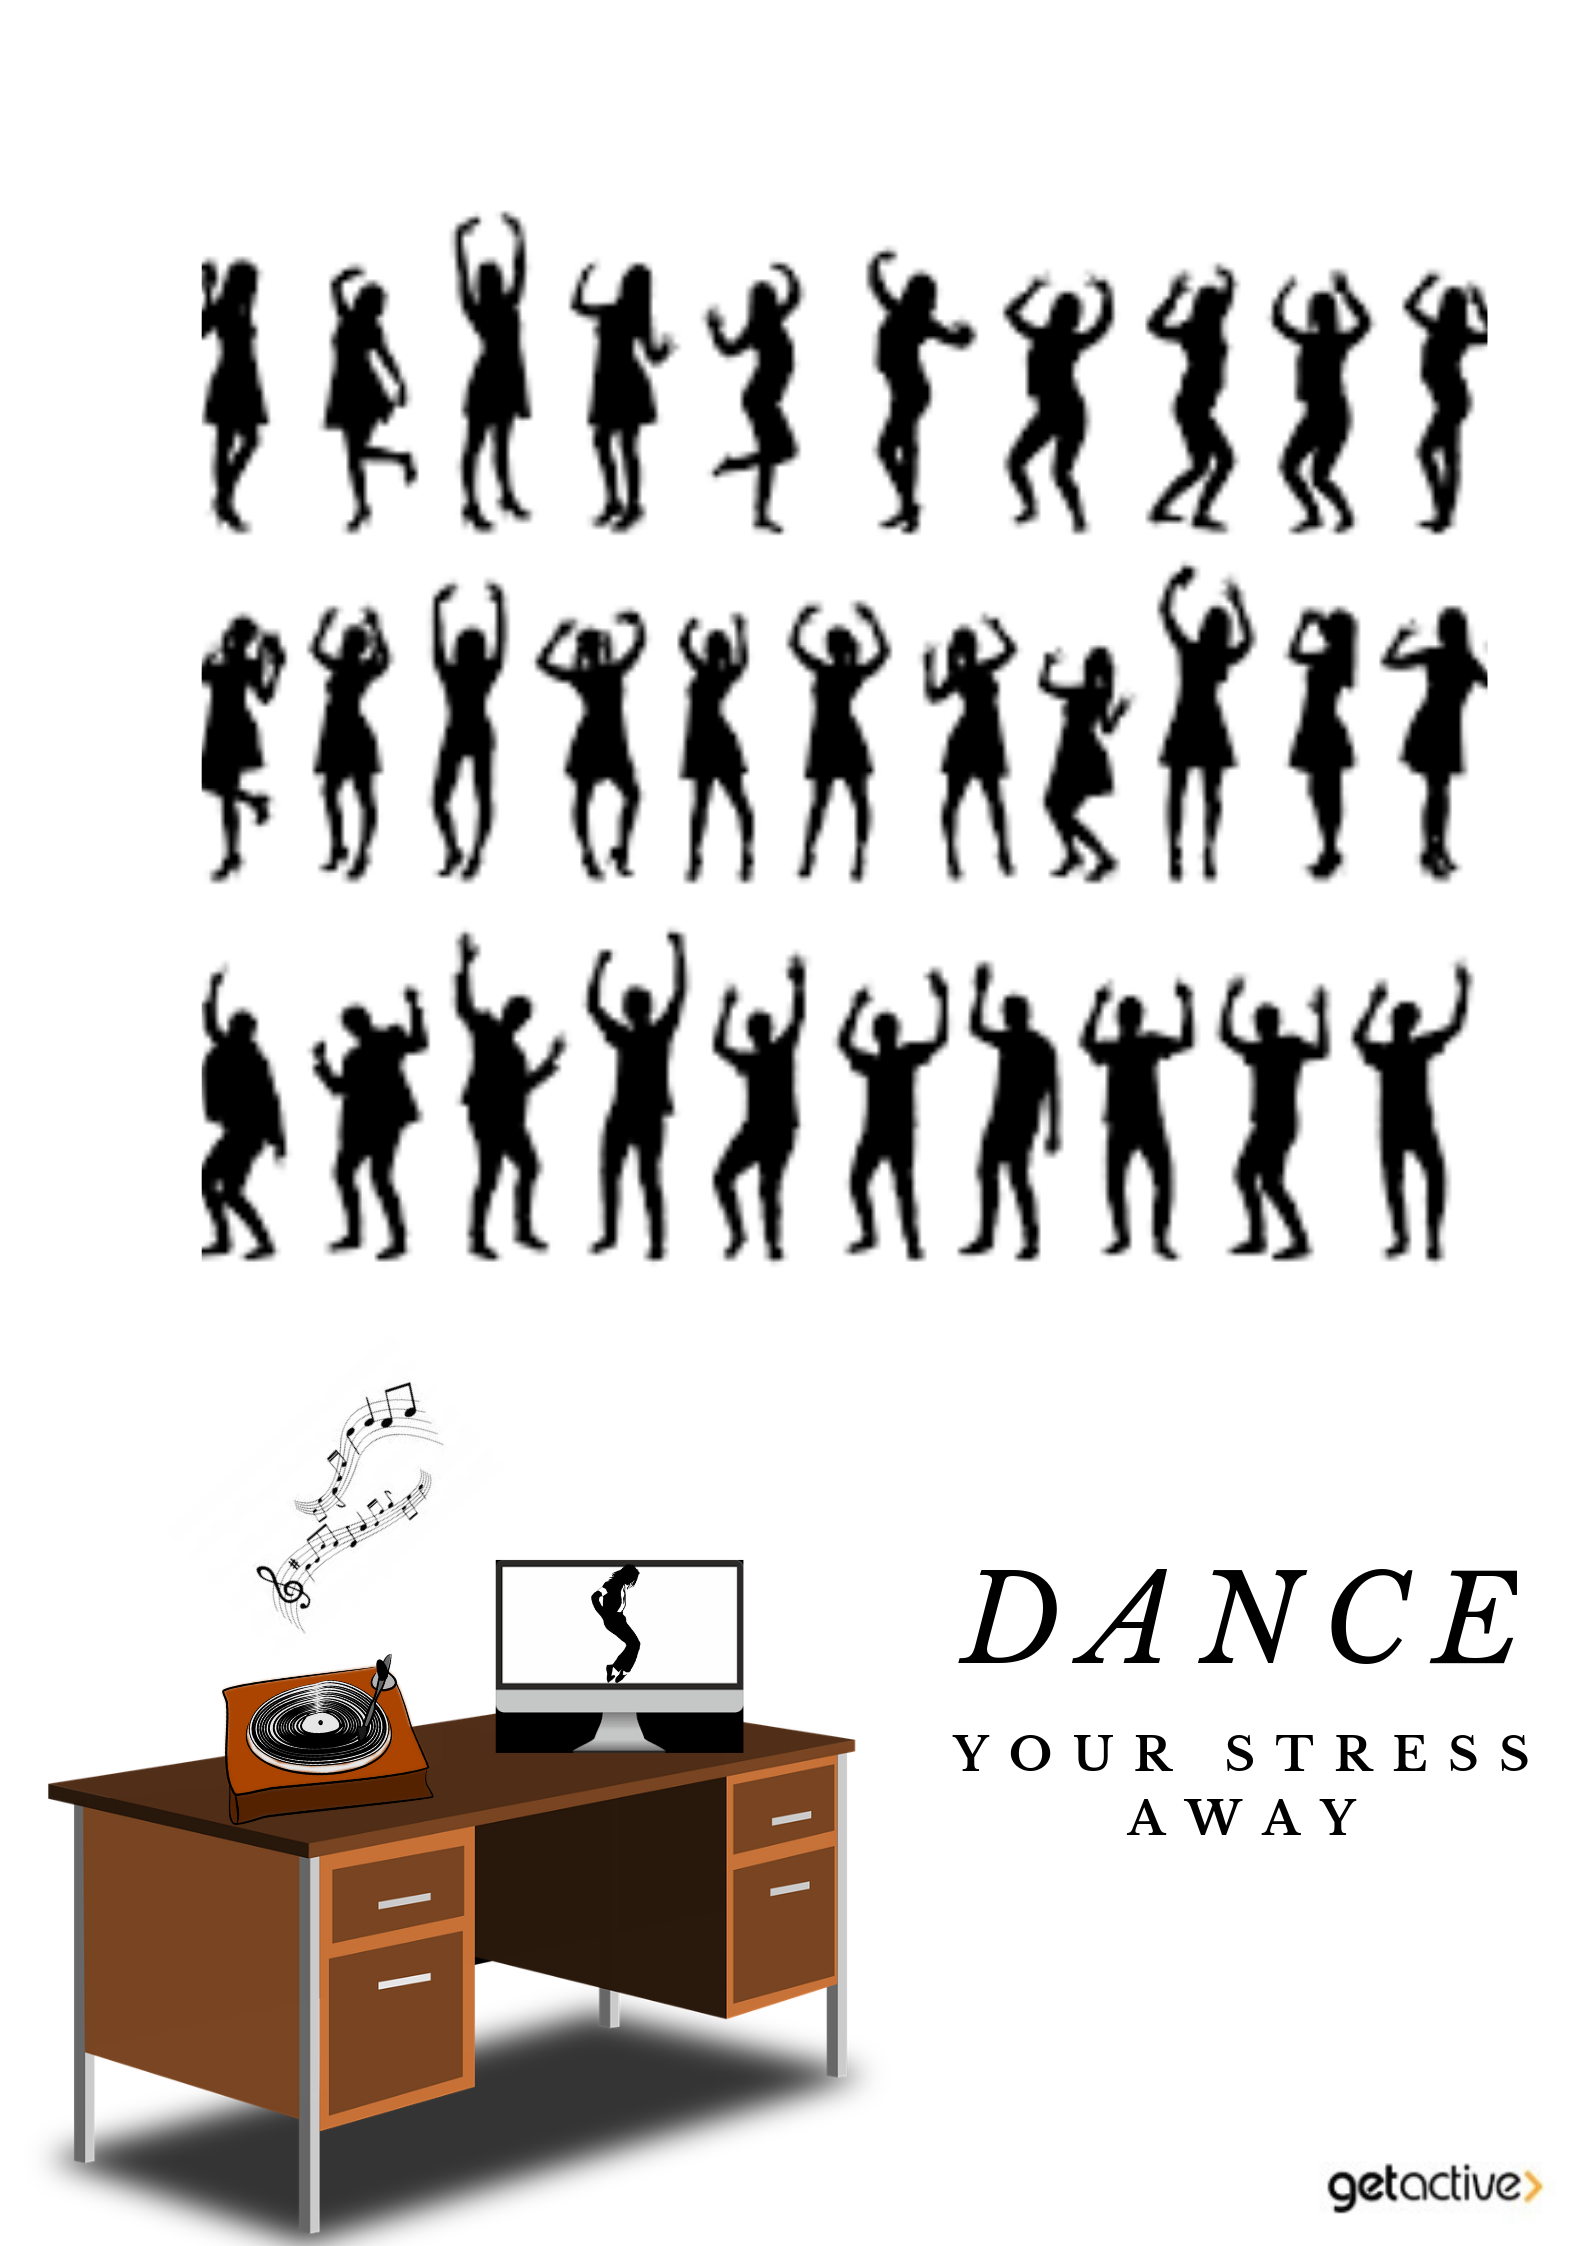 Push away work stress with flash mob dance songs